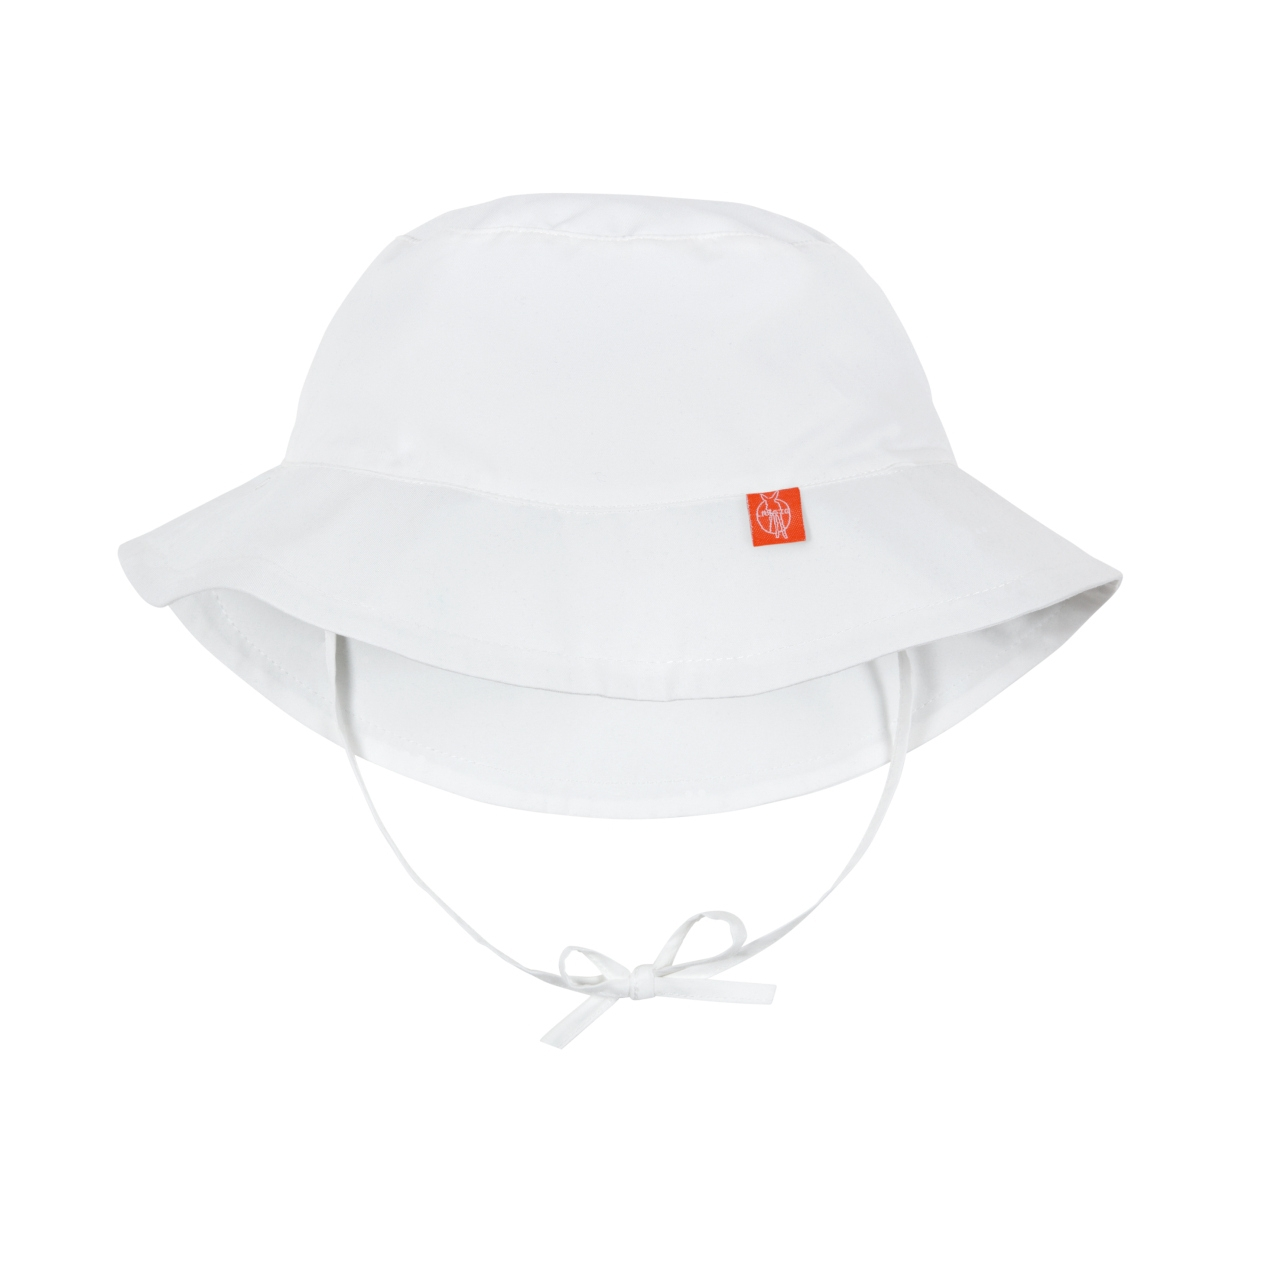 sun protection bucket hat girls 6 18 monate white kinderbademode l ssig lieblingsmarken. Black Bedroom Furniture Sets. Home Design Ideas